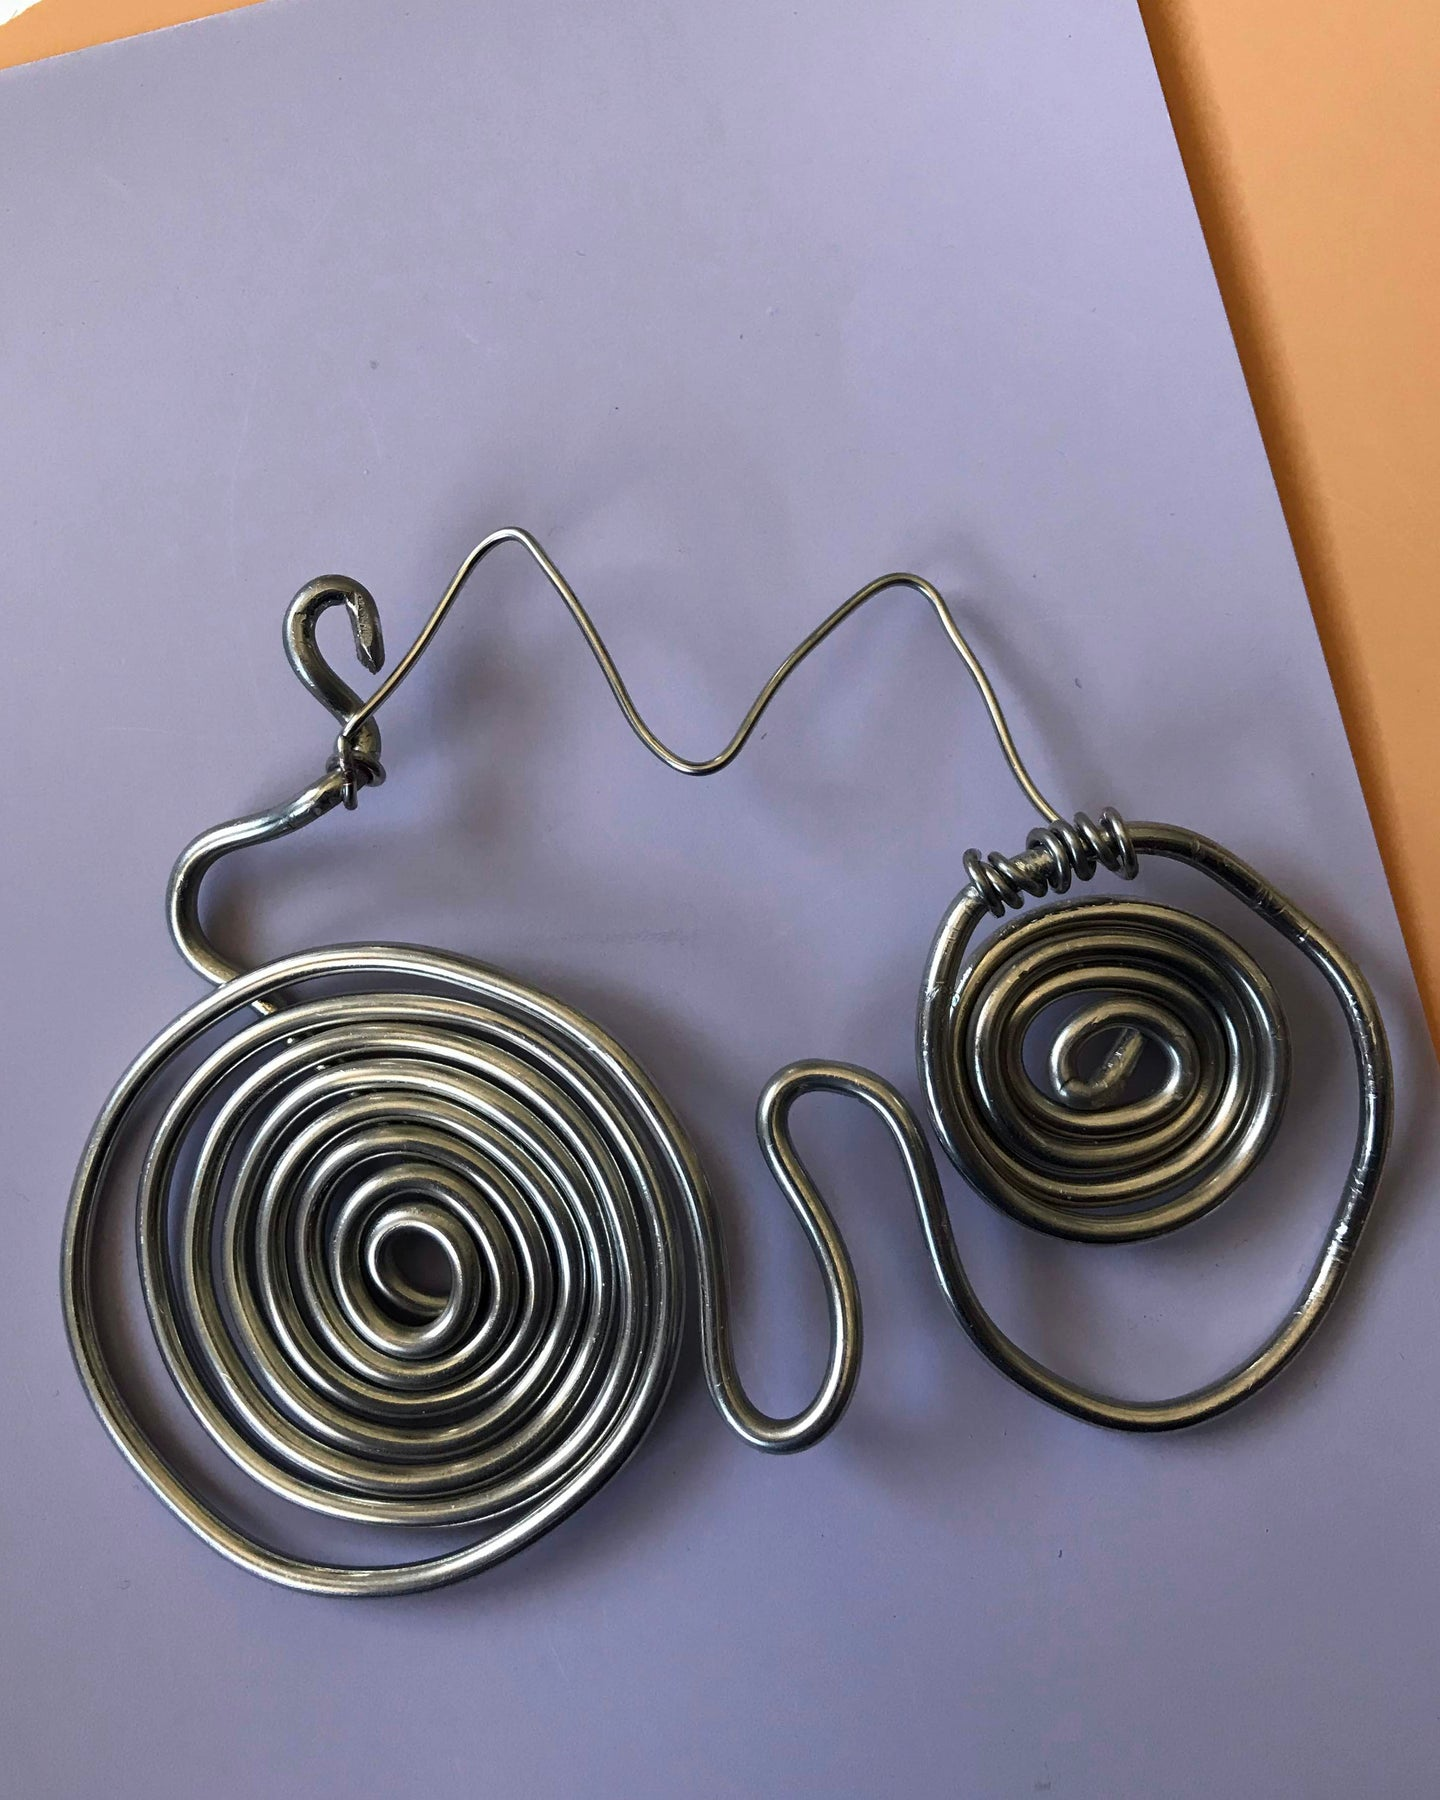 Silver-toned Double Spiral Pendant Which can be Worn as a Necklace